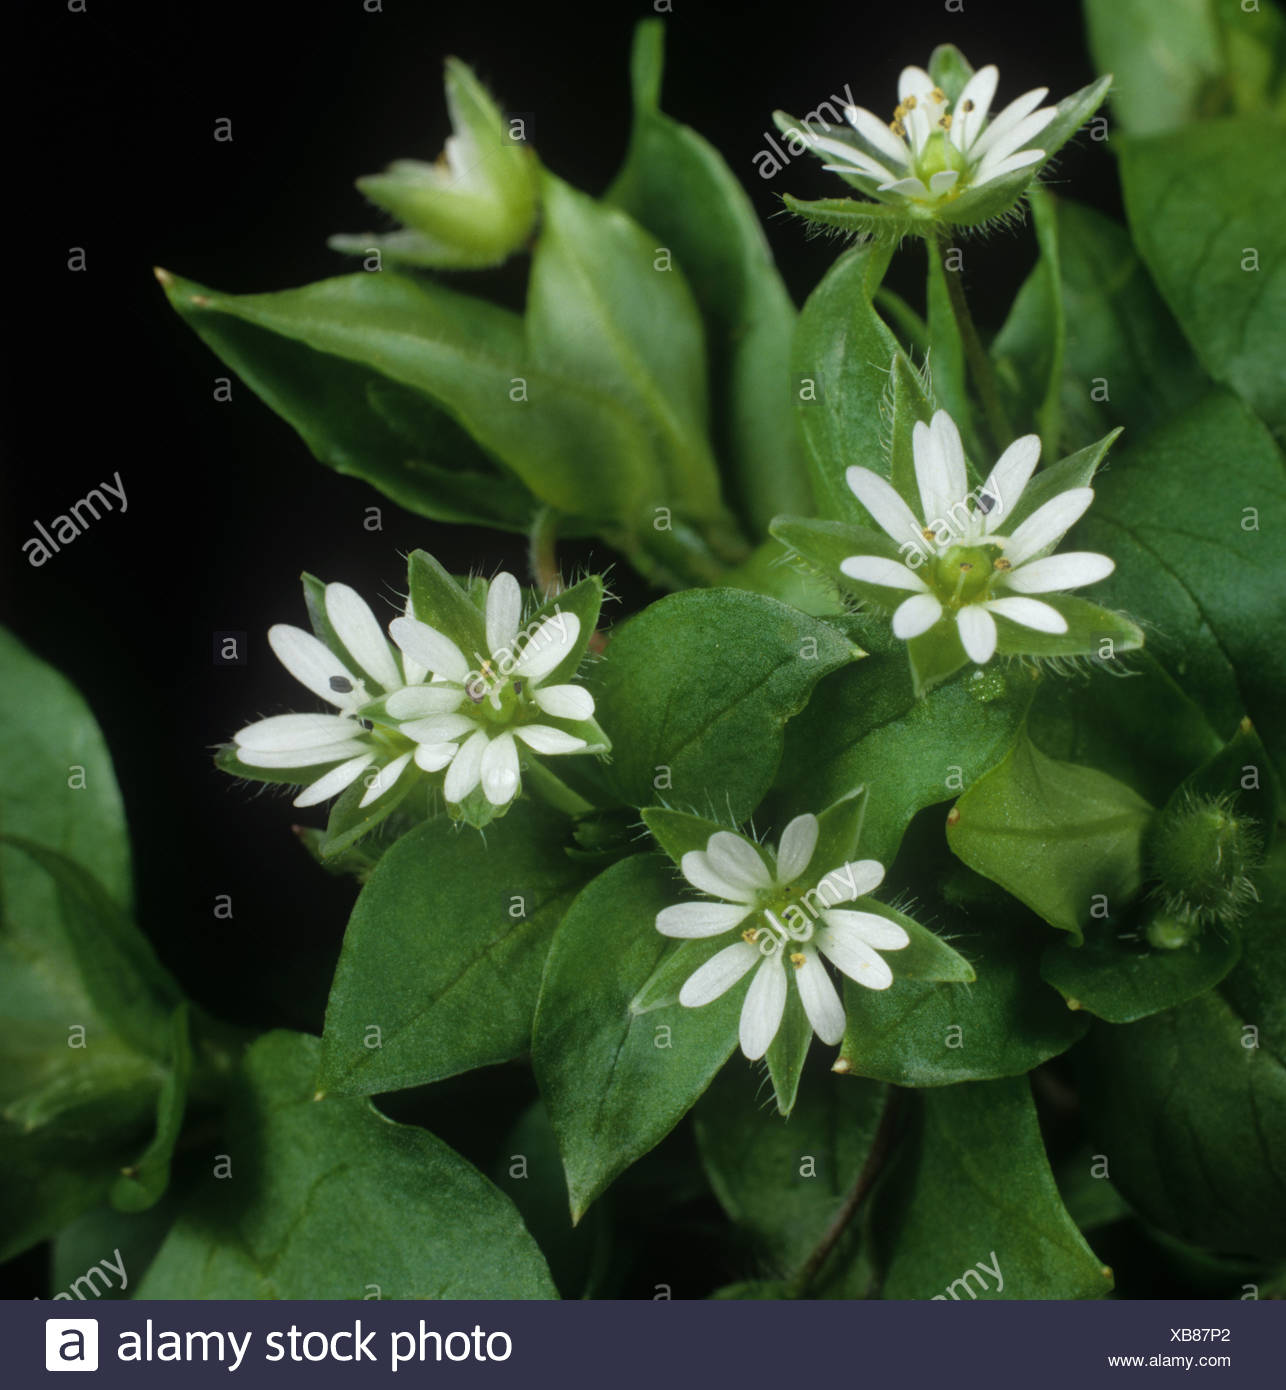 Chickweed Stellaria media flowers in close up - Stock Image